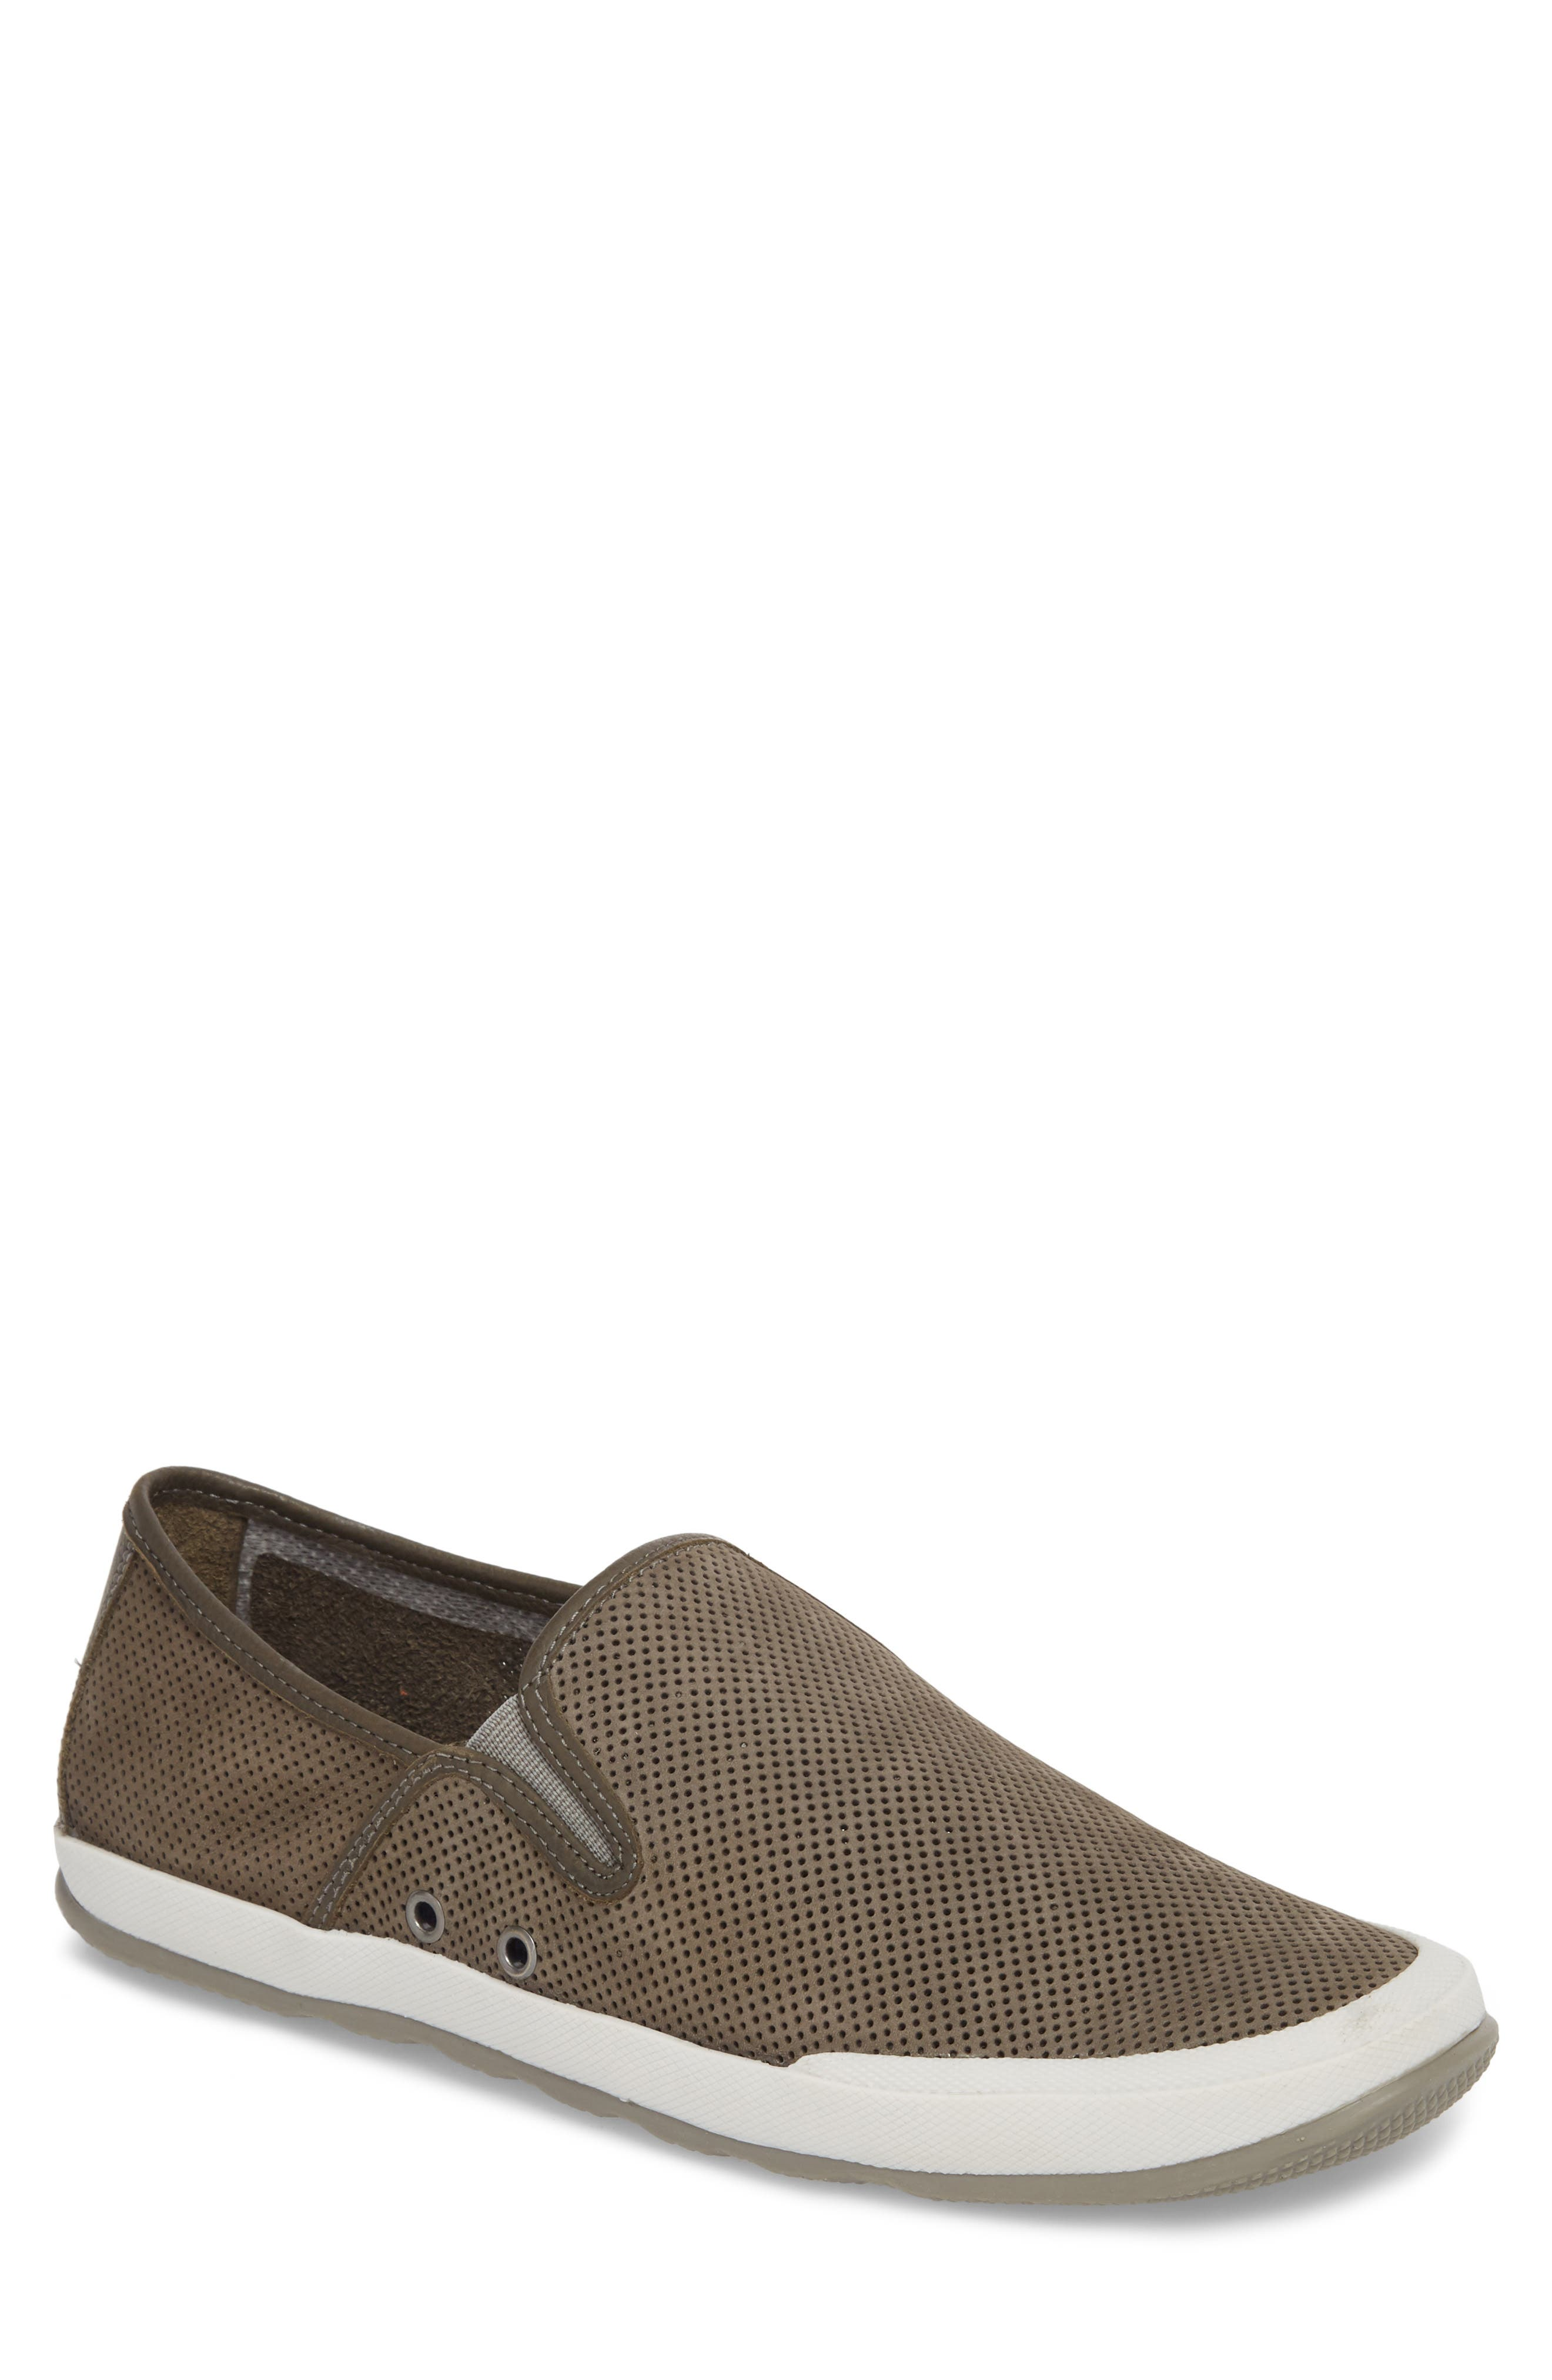 'Mullen' Slip-On,                         Main,                         color, Grey Perfed Nubuck